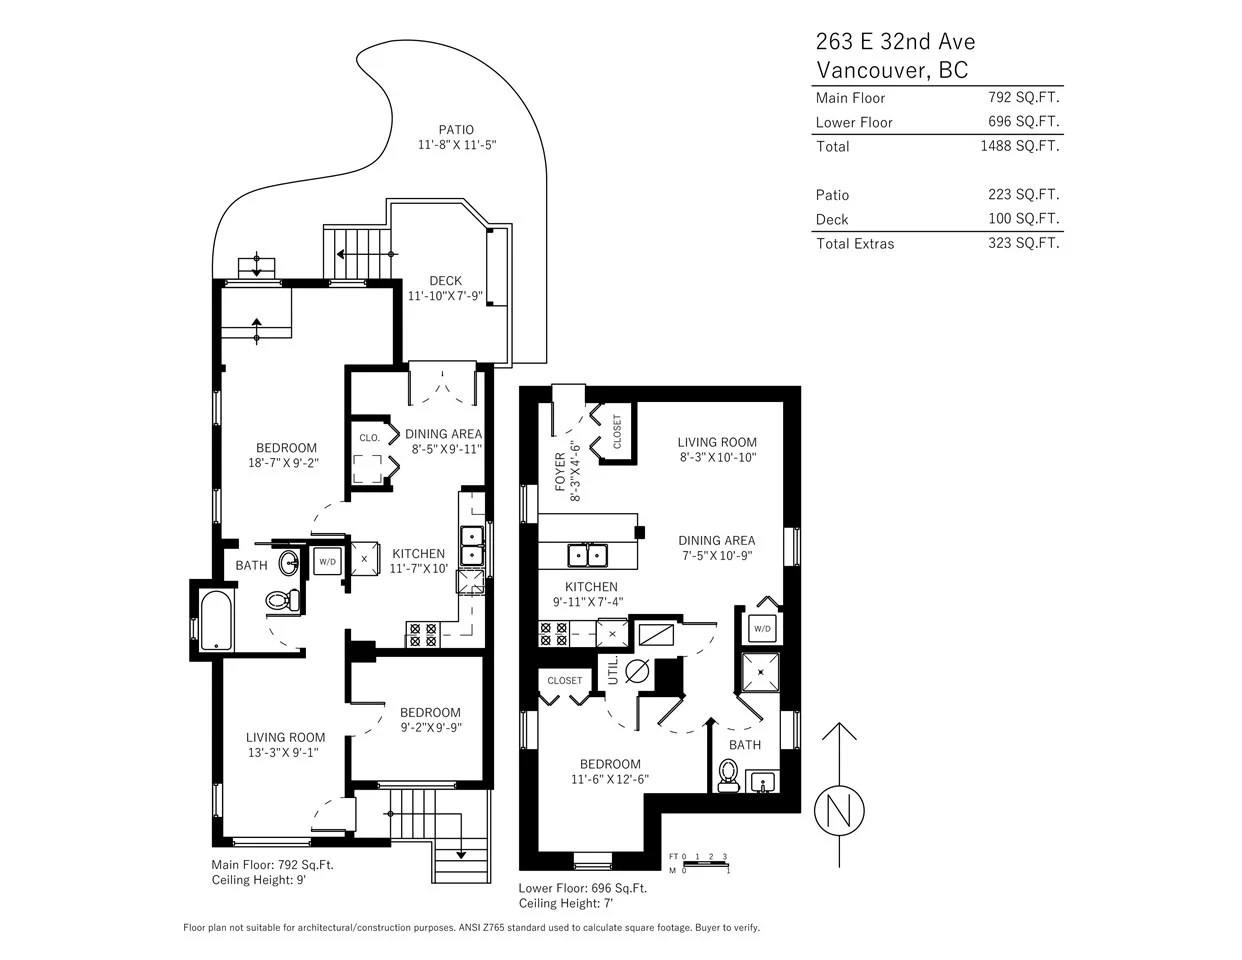 2 for sale 263 east 32nd avenue vancouver bc 3 bed 2 [ 1242 x 960 Pixel ]